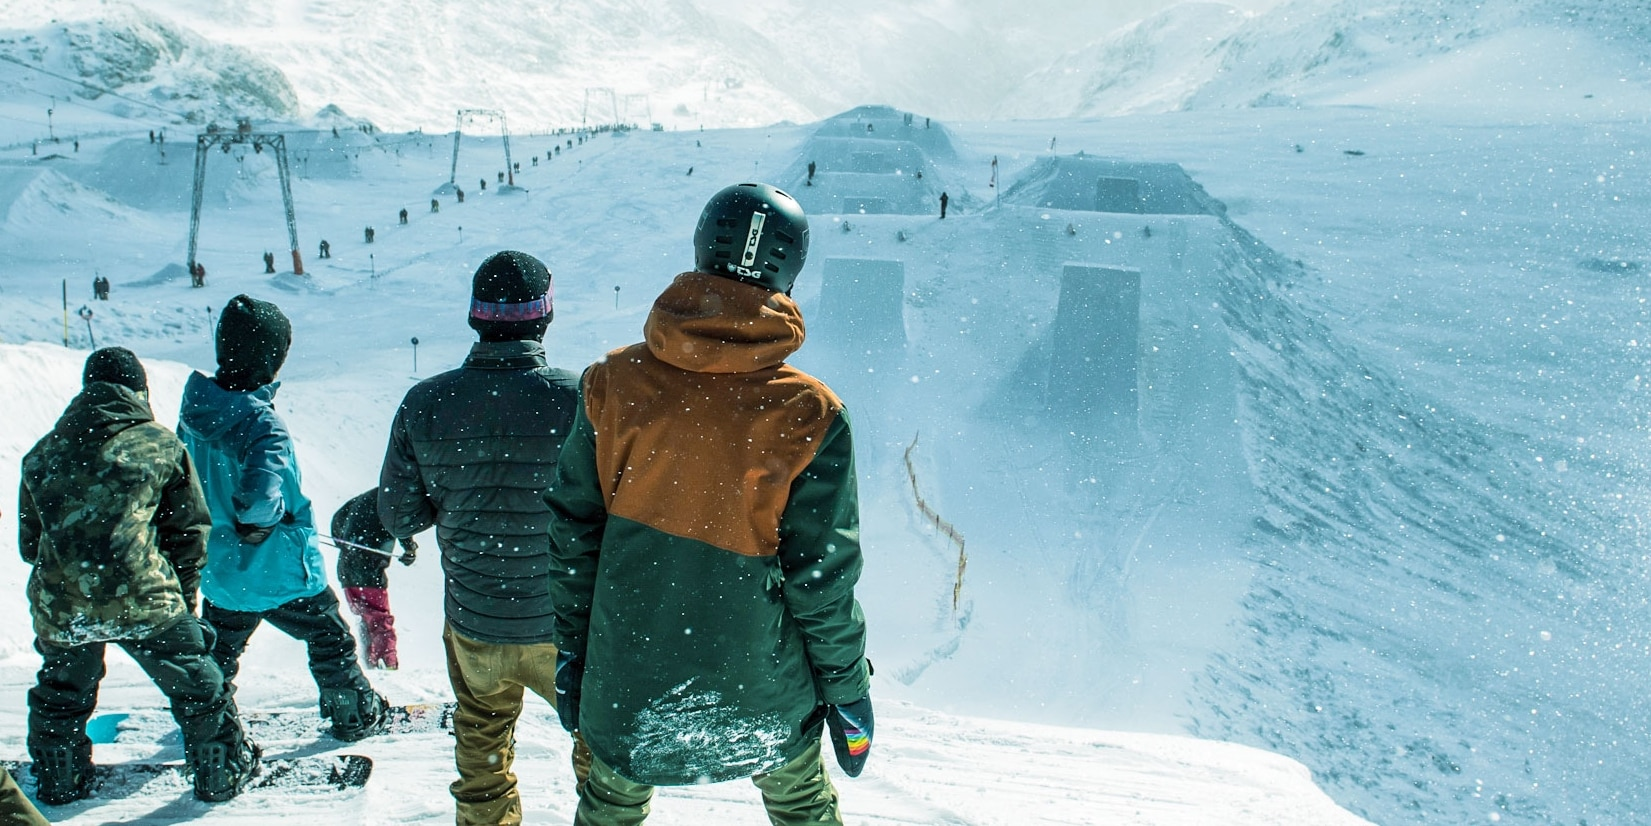 Prime Park Sessions im Freestyle Park am Stubaier Gletscher